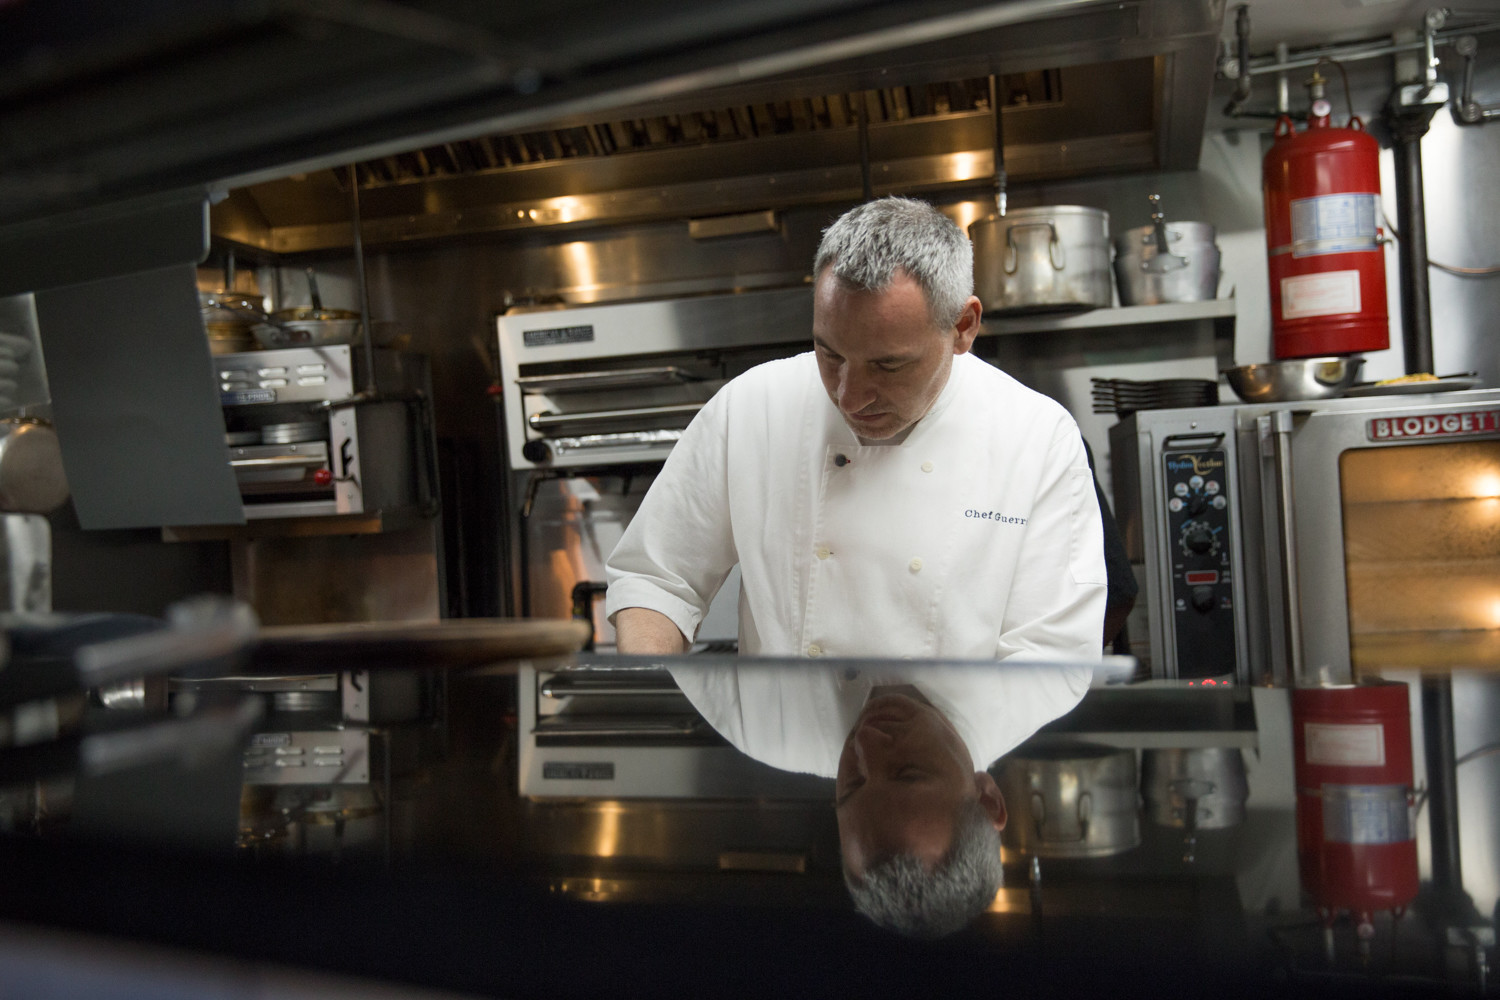 The Hill Bistro's chef Michael Guerrieri preps for the evening's opening in the kitchen. The restaurant opened Sept. 22 and brings live music and brunch to Riverdale Avenue.